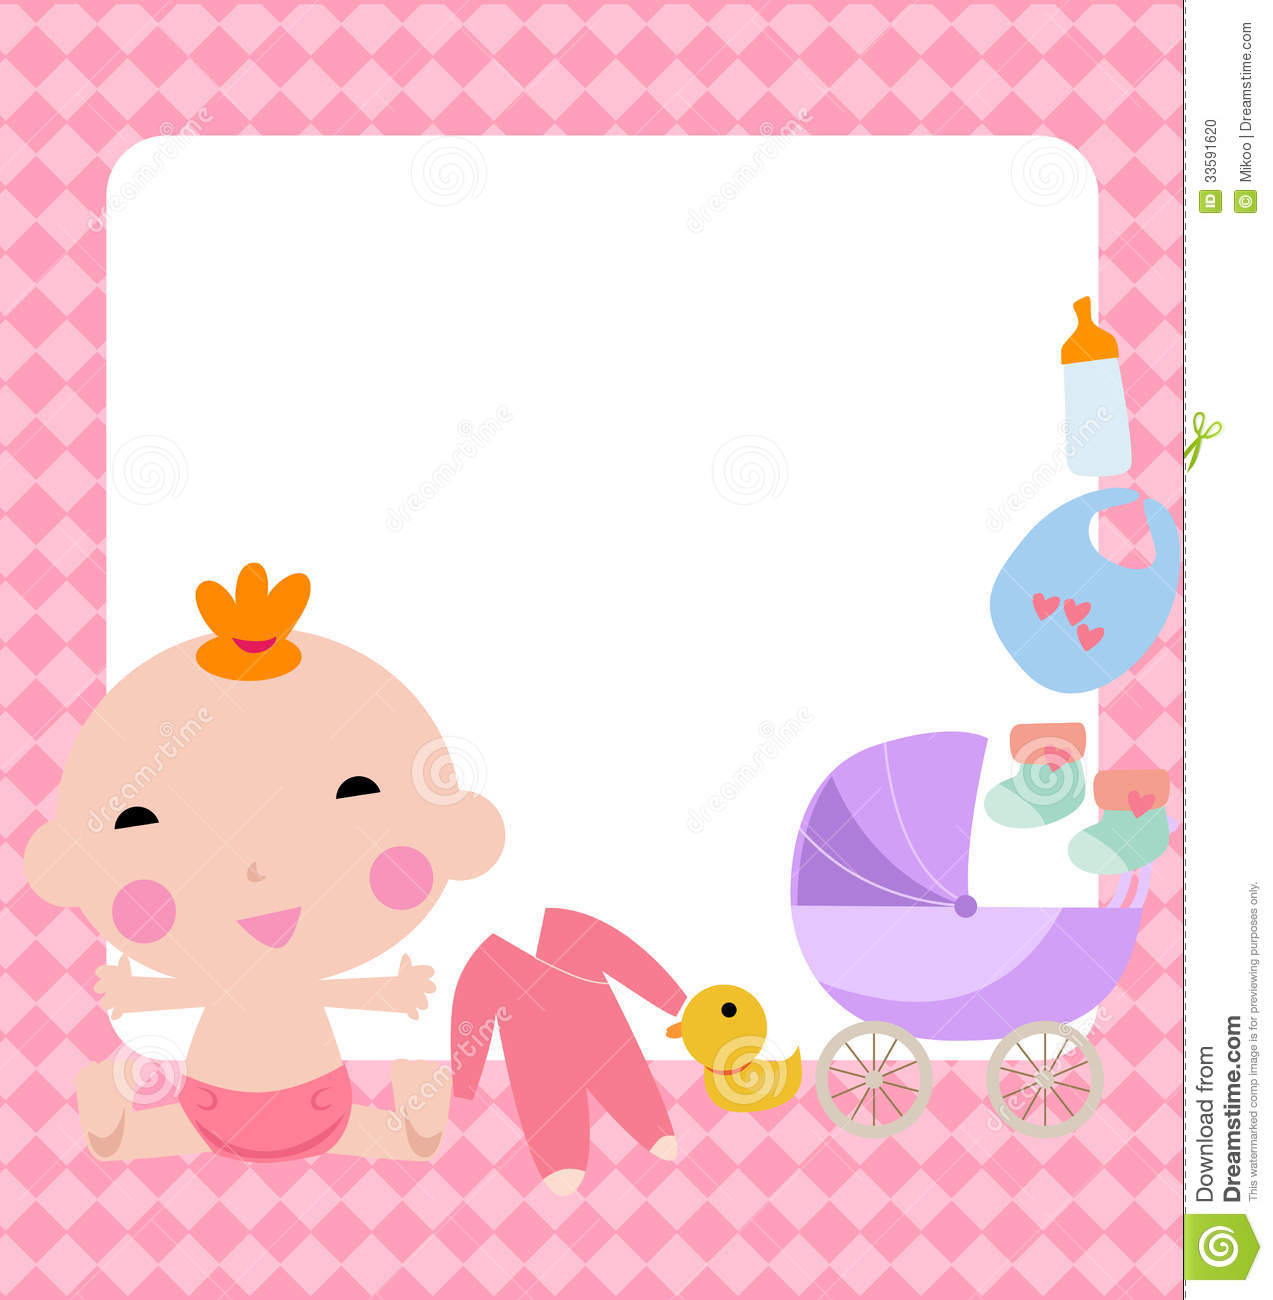 Baby girl and frame stock vector. Illustration of sock - 33591620